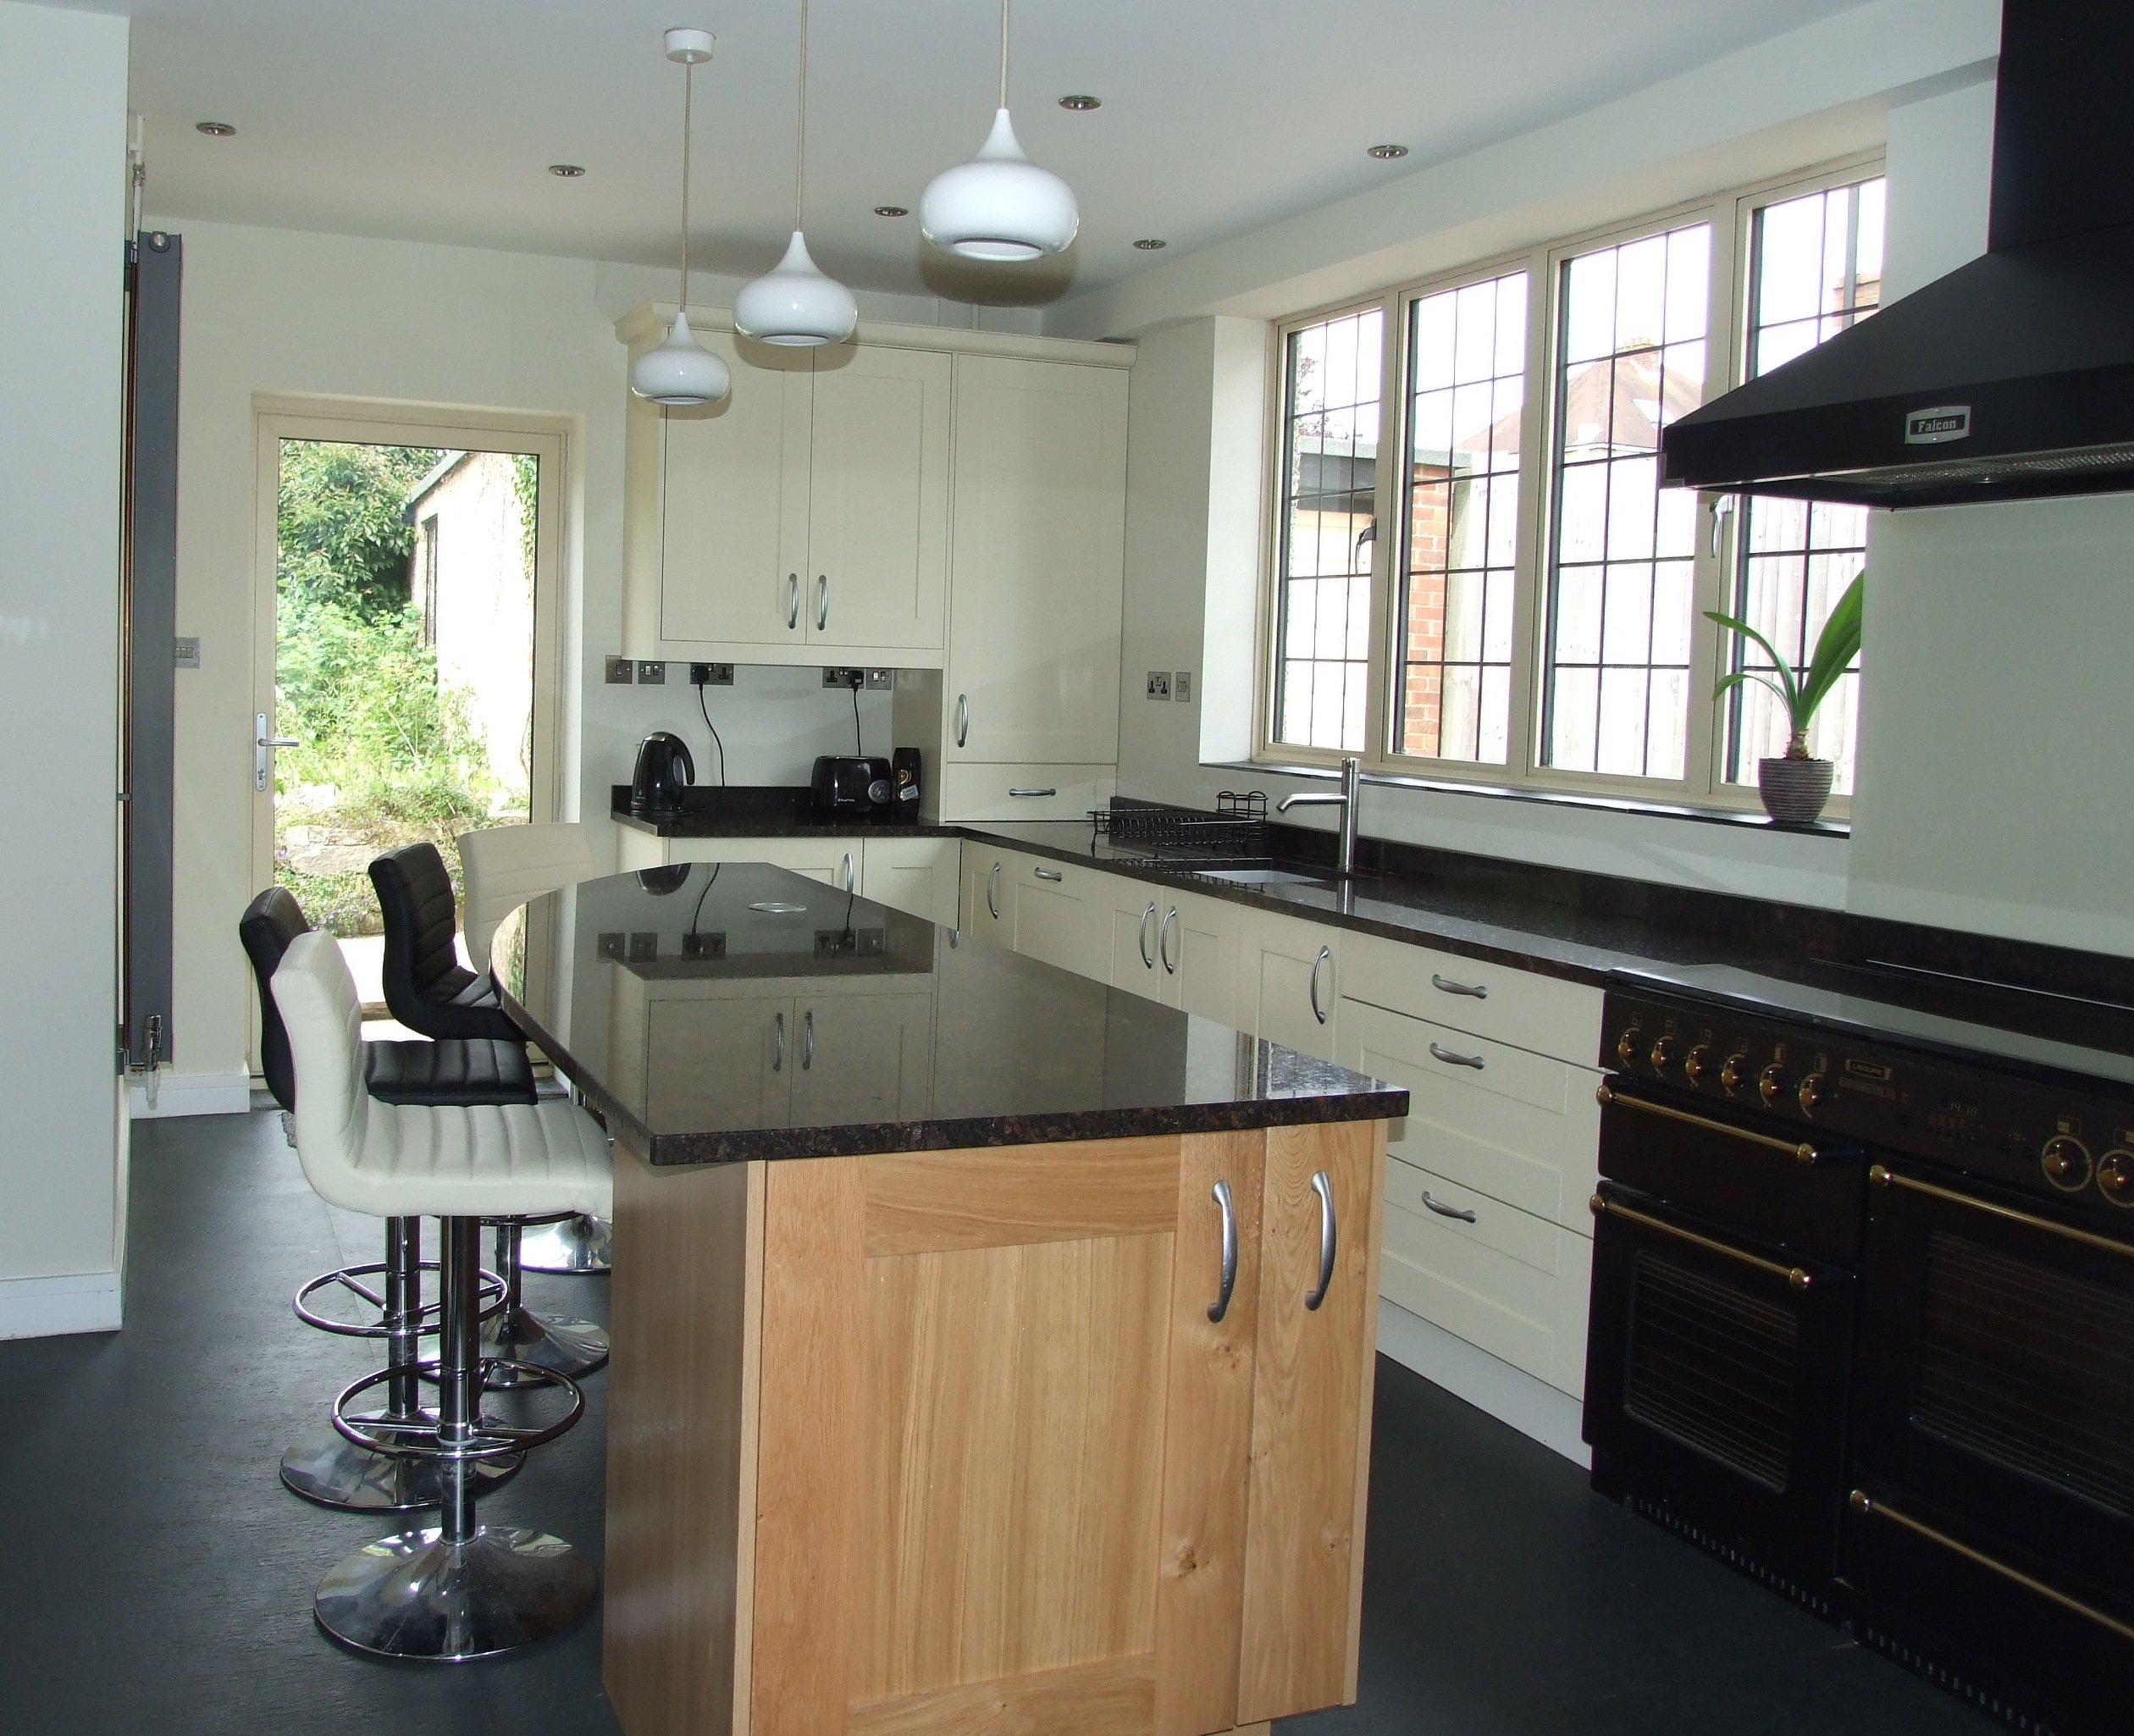 contrasting kitchen cabinets our latest work the kitchen cabinets with contrasting island kitchen